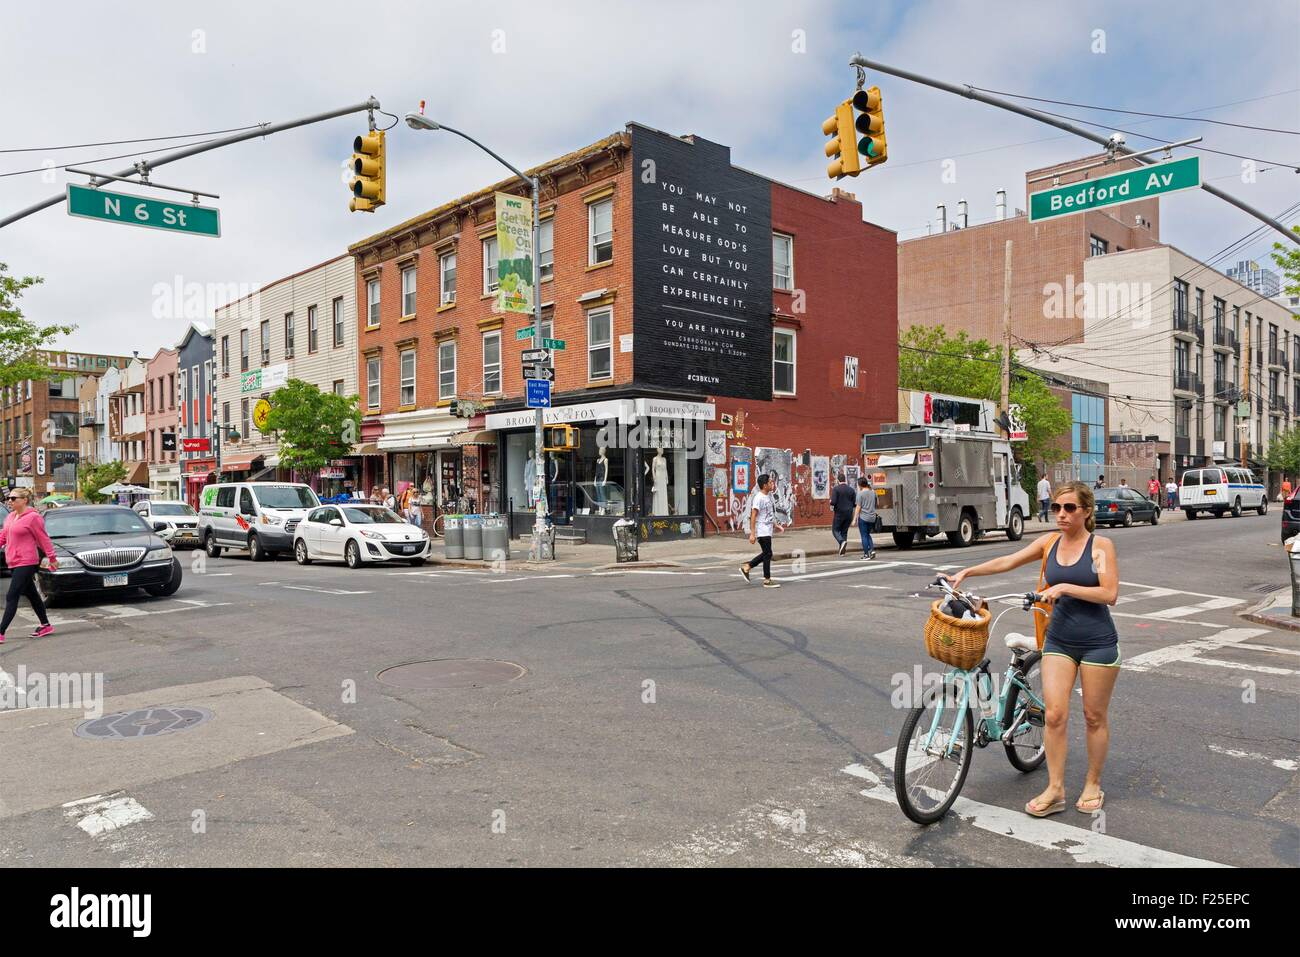 Stati Uniti, New York, Brooklyn, quartiere di Williamsburg, Bedford Avenue Immagini Stock